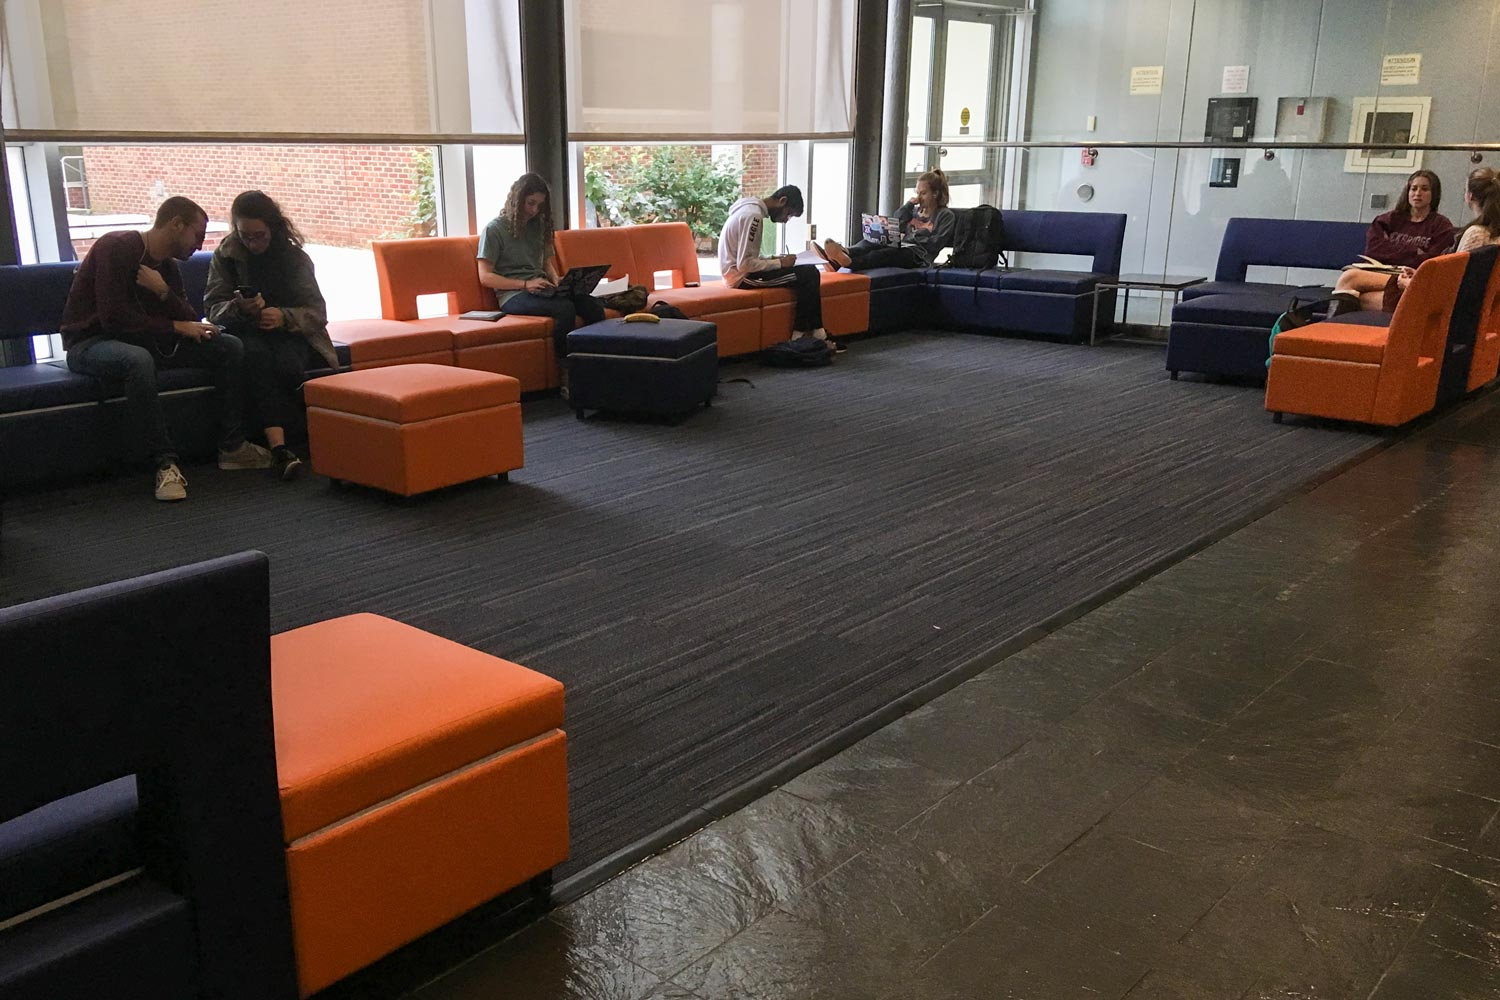 Students can spread out on the comfy UVA-colored furniture at Argo Tea.